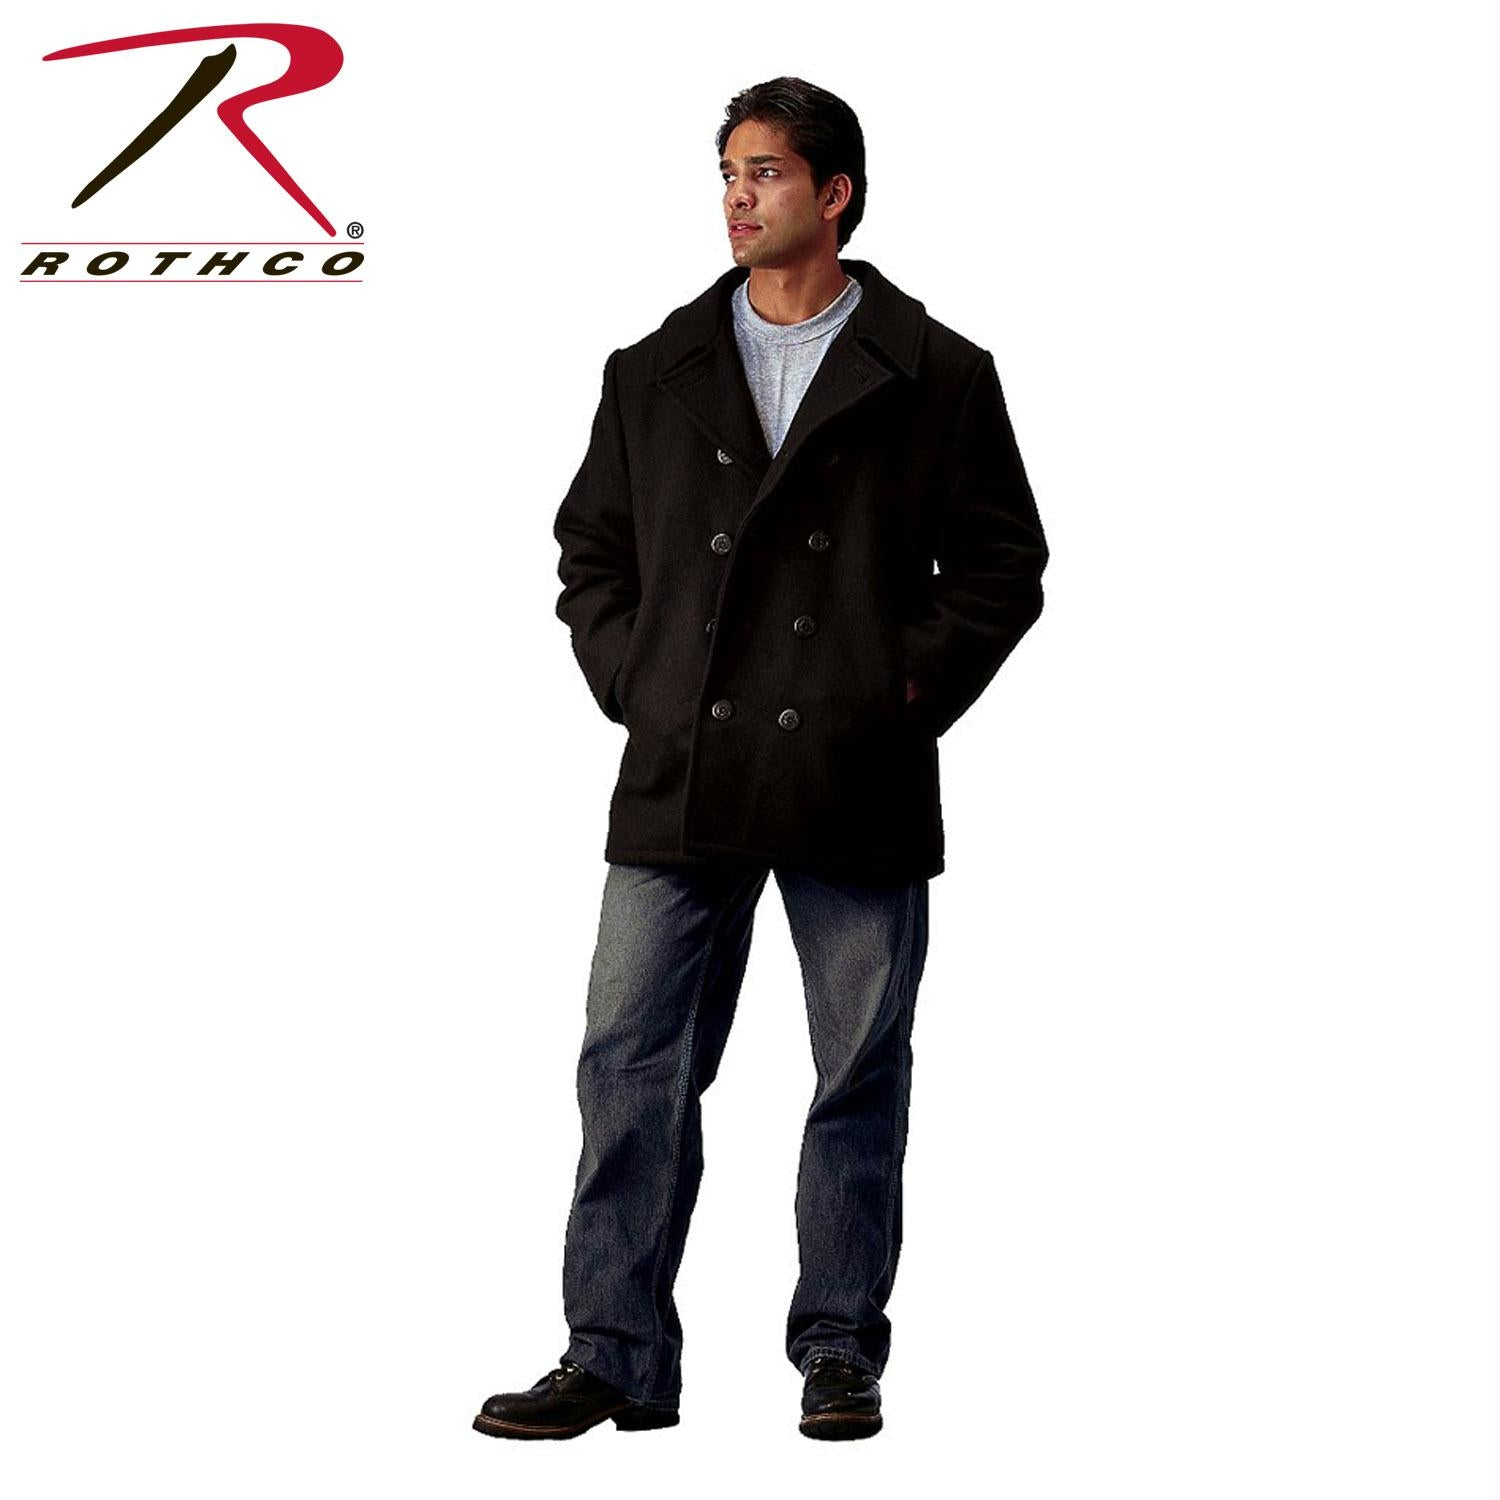 Rothco US Navy Type Pea Coat - Black / 3XL